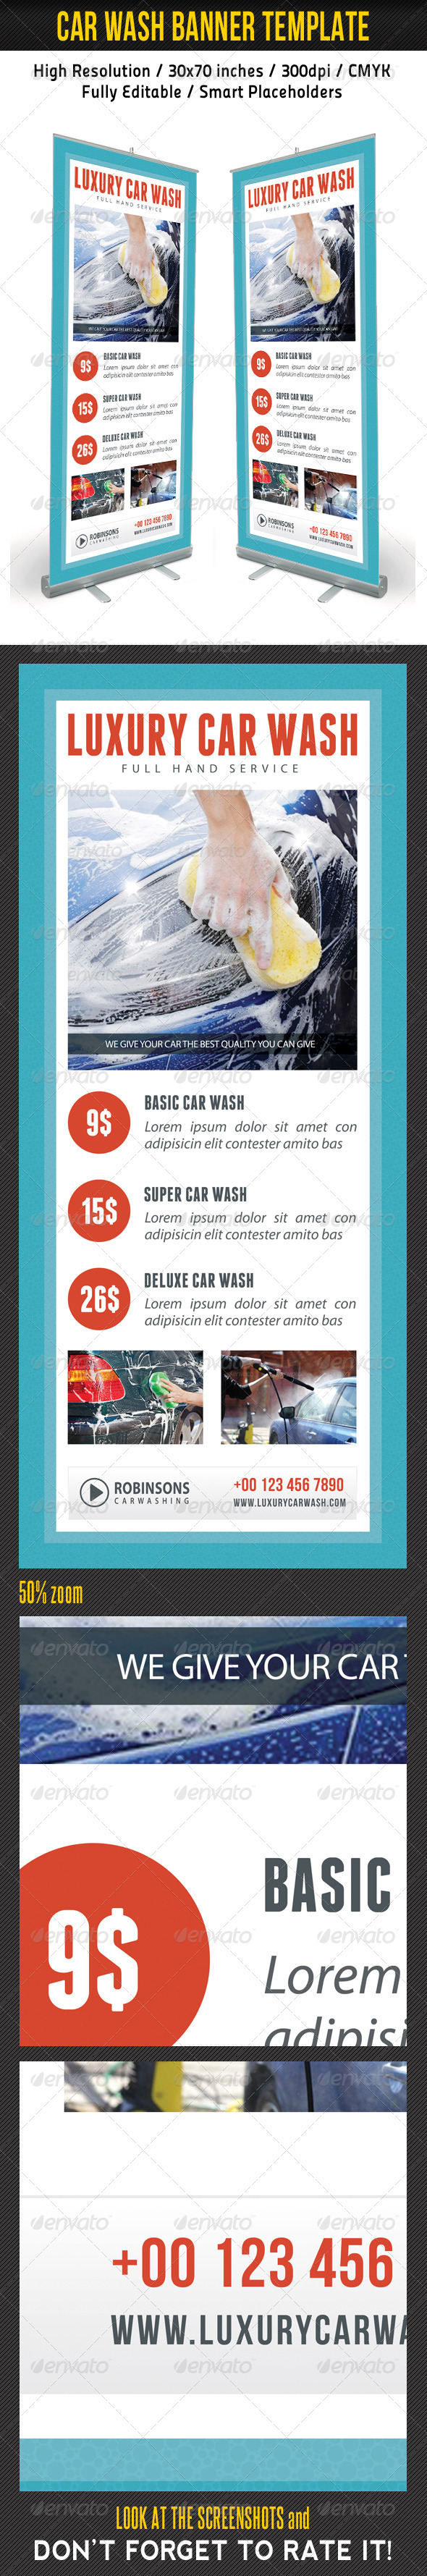 GraphicRiver Car Wash Banner Template 02 7941487